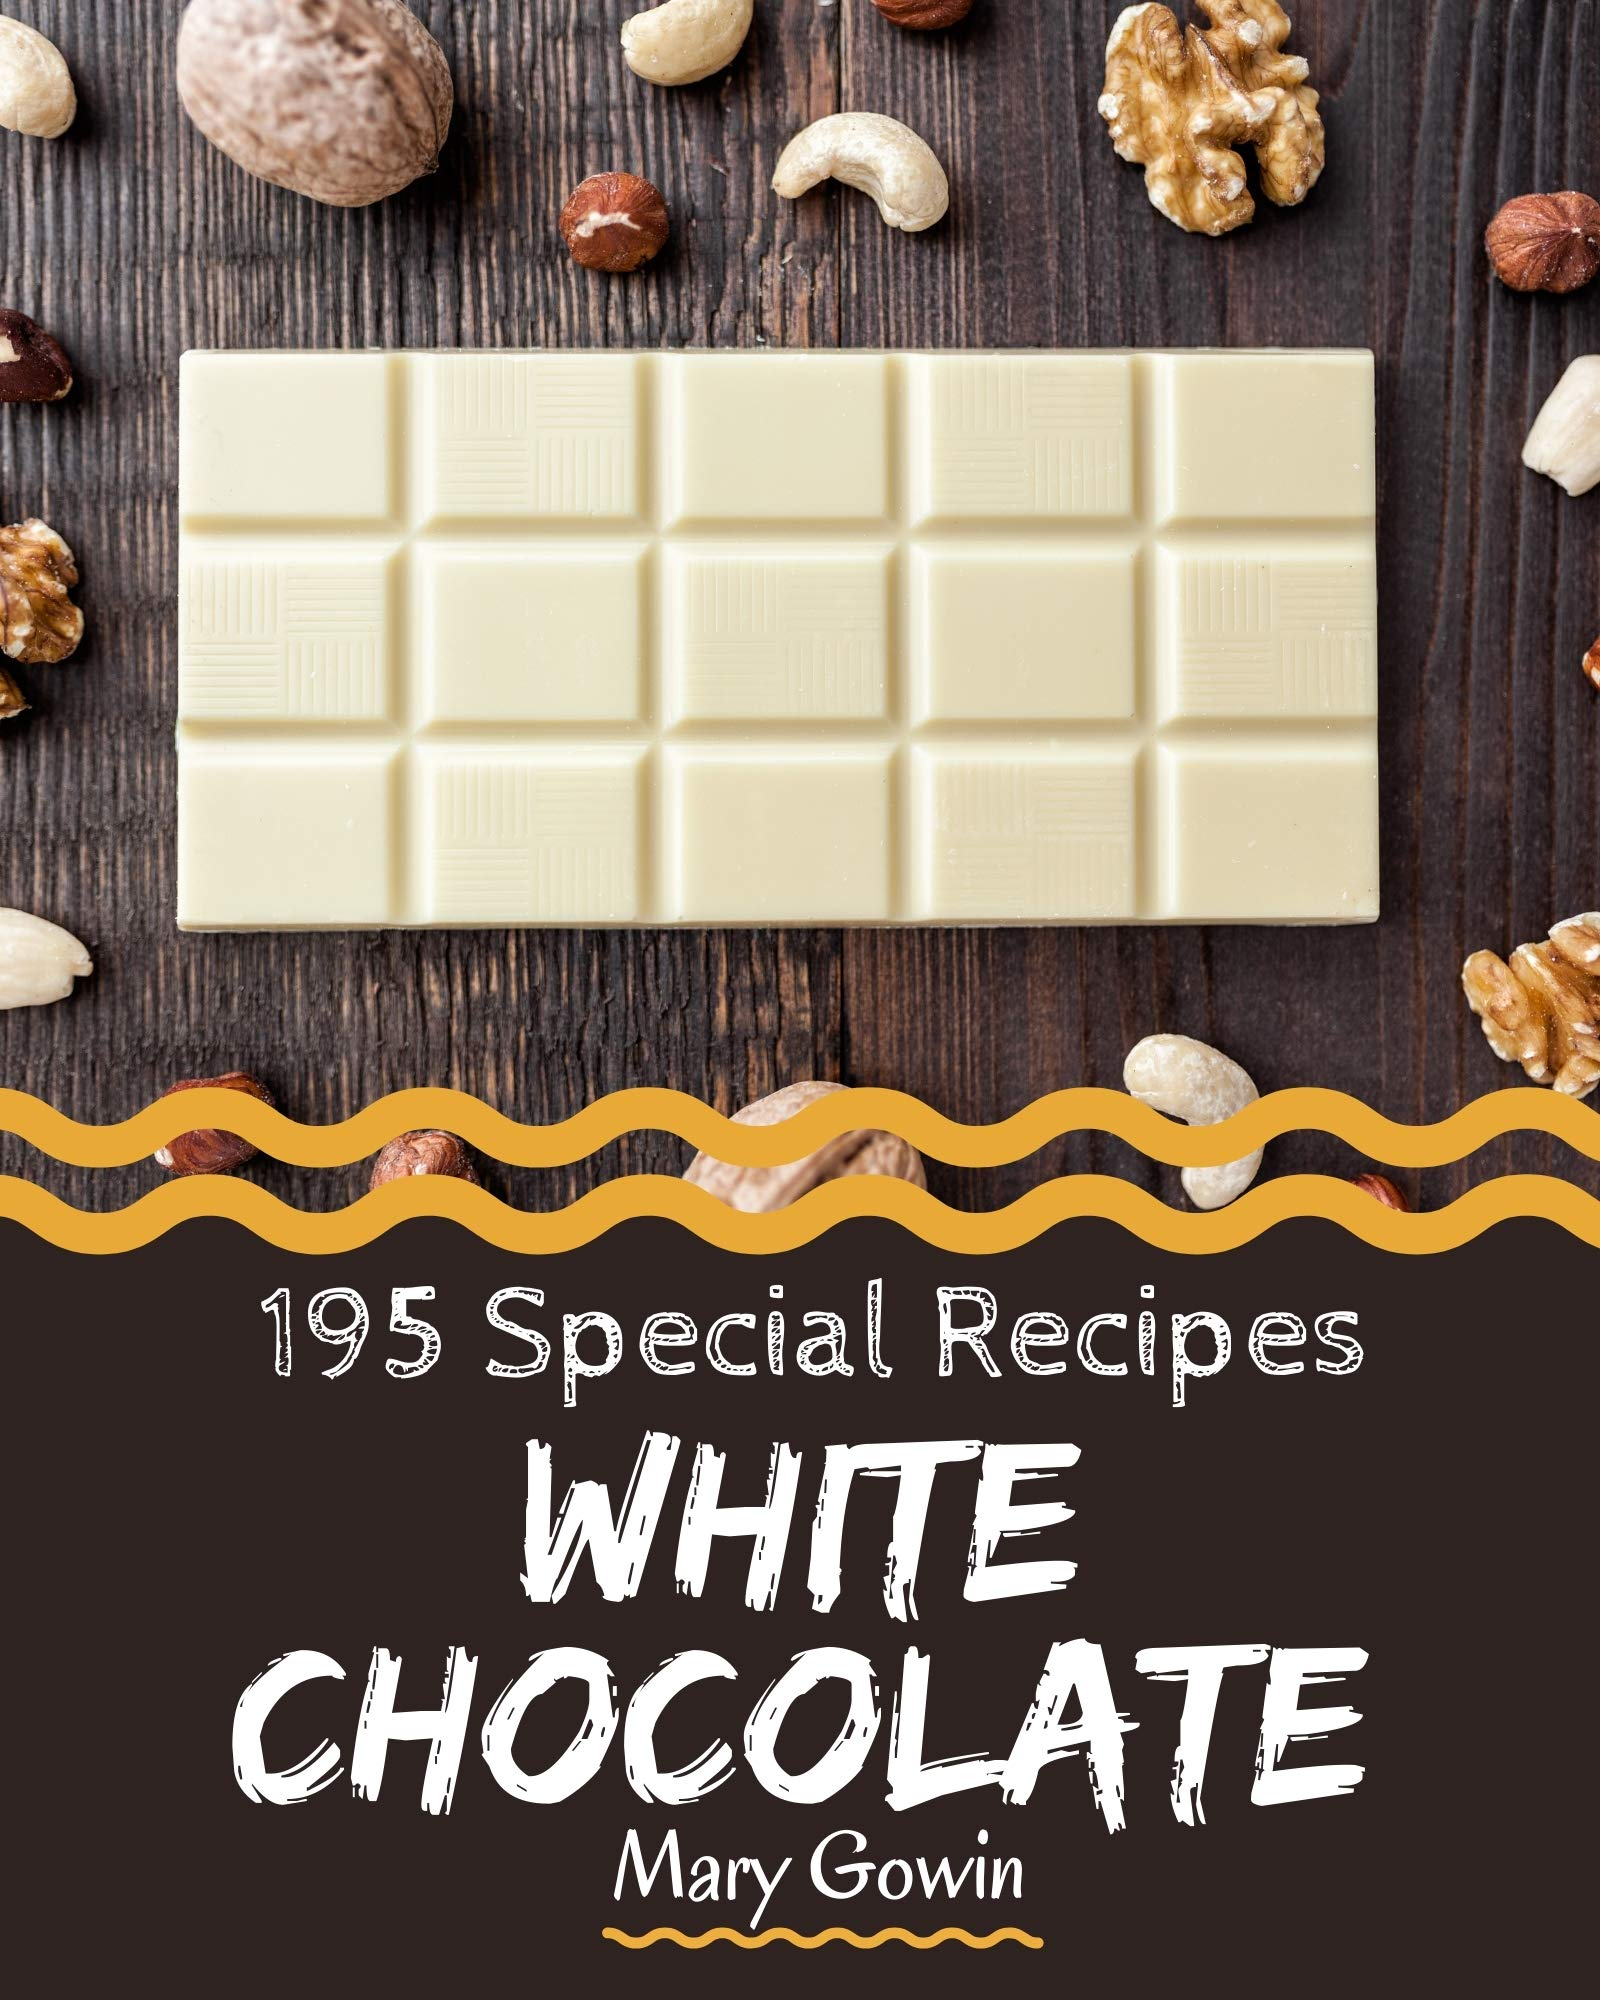 195 Special White Chocolate Recipes: A White Chocolate Cookbook You Won't be Able to Put Down